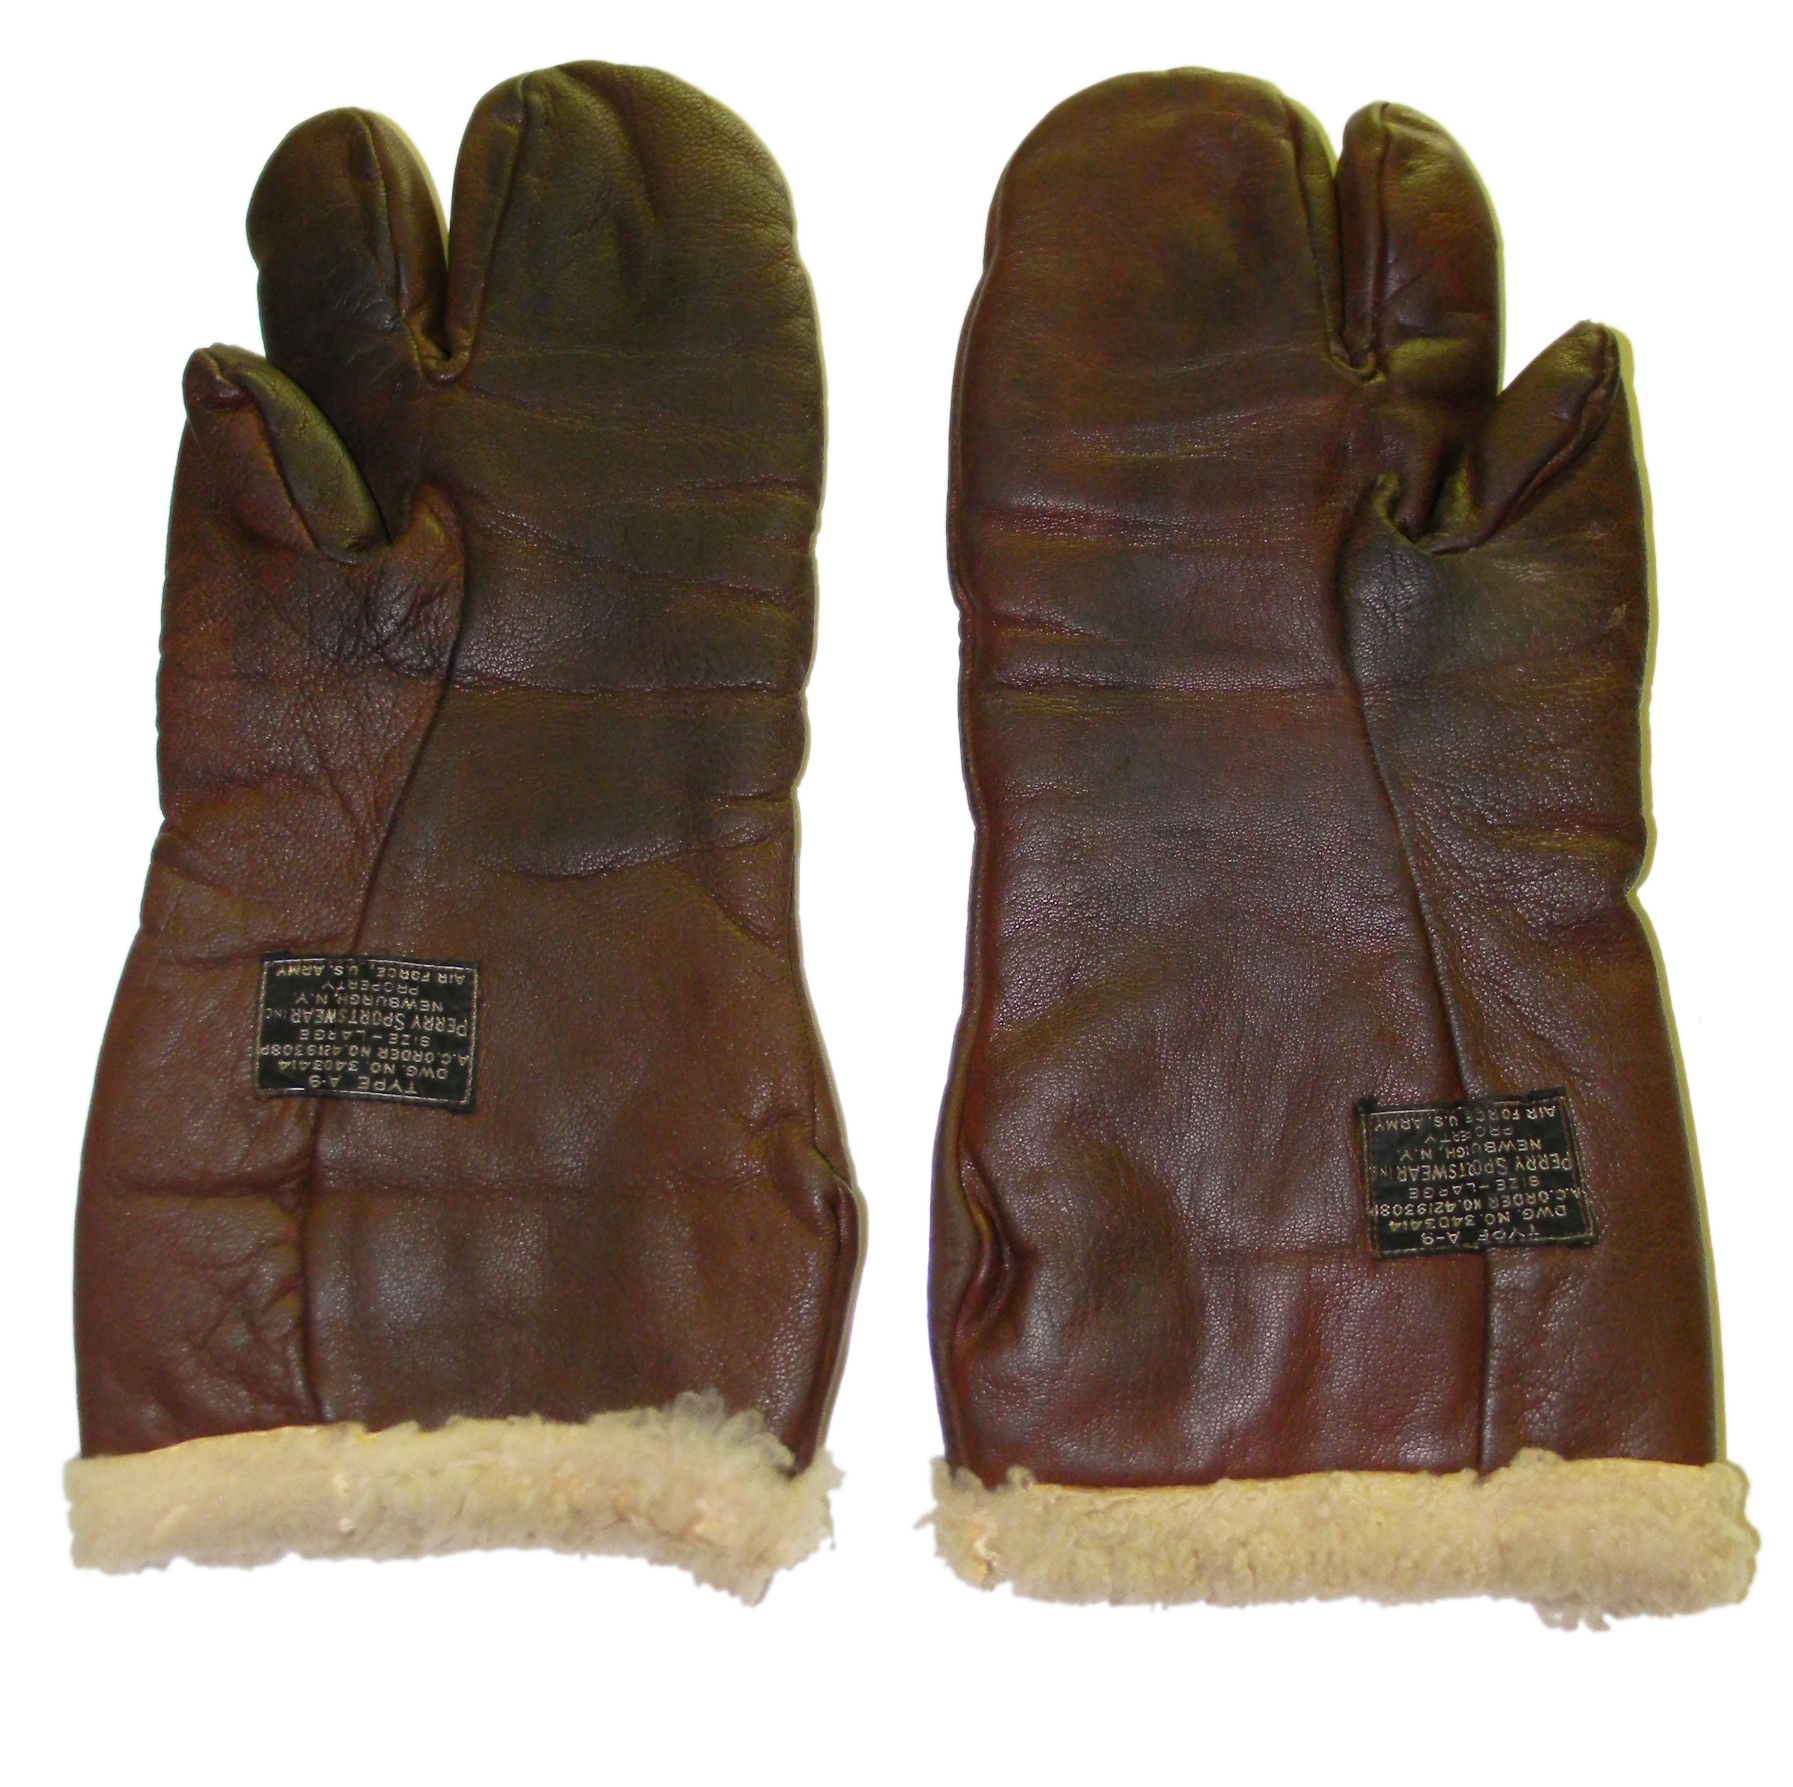 AAF B-9 gunner's gloves